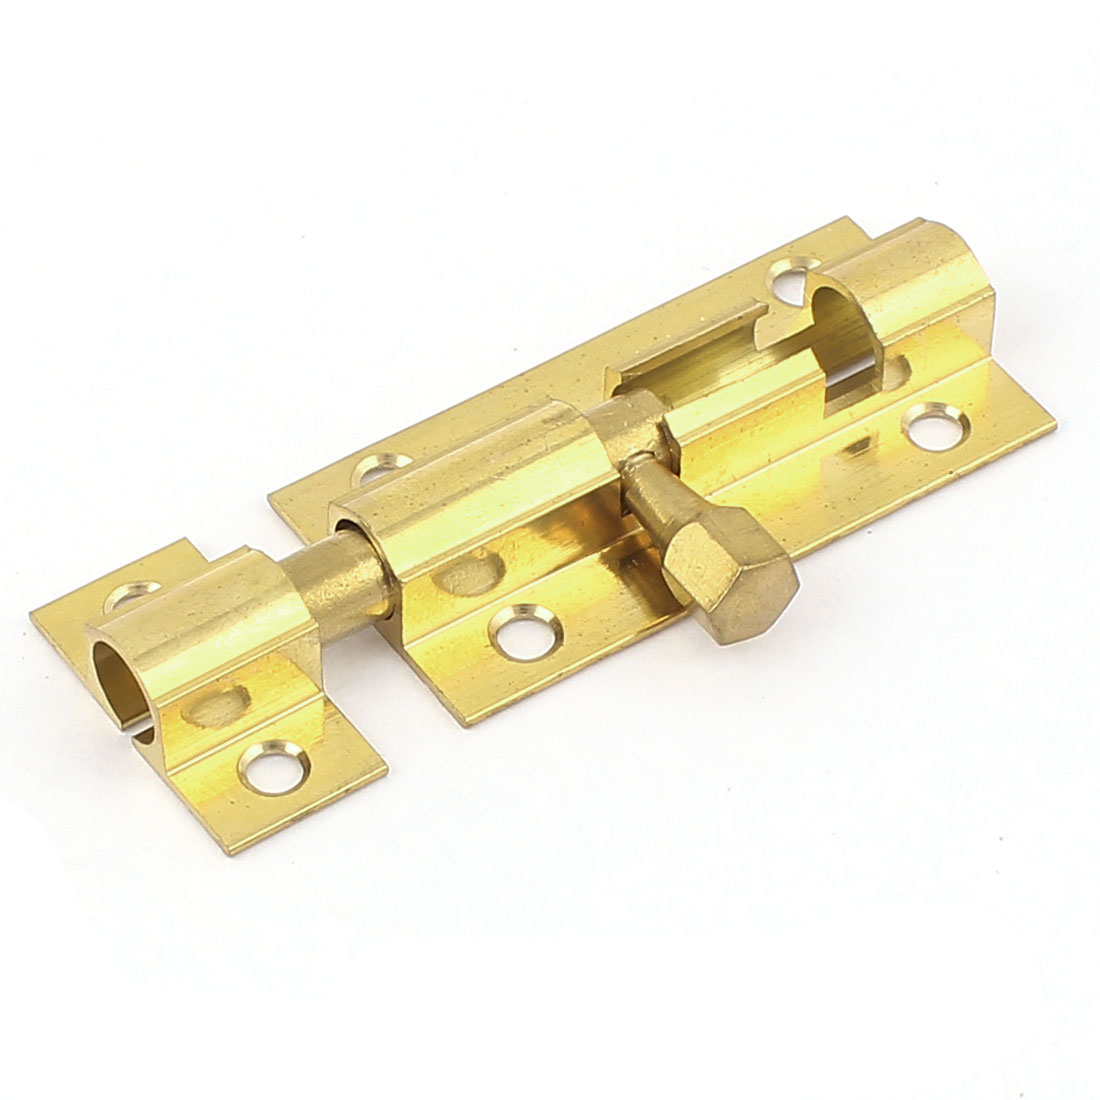 "2"" Length Brass Door Security Latch Sliding Lock Barrel Bolt Gold Tone"